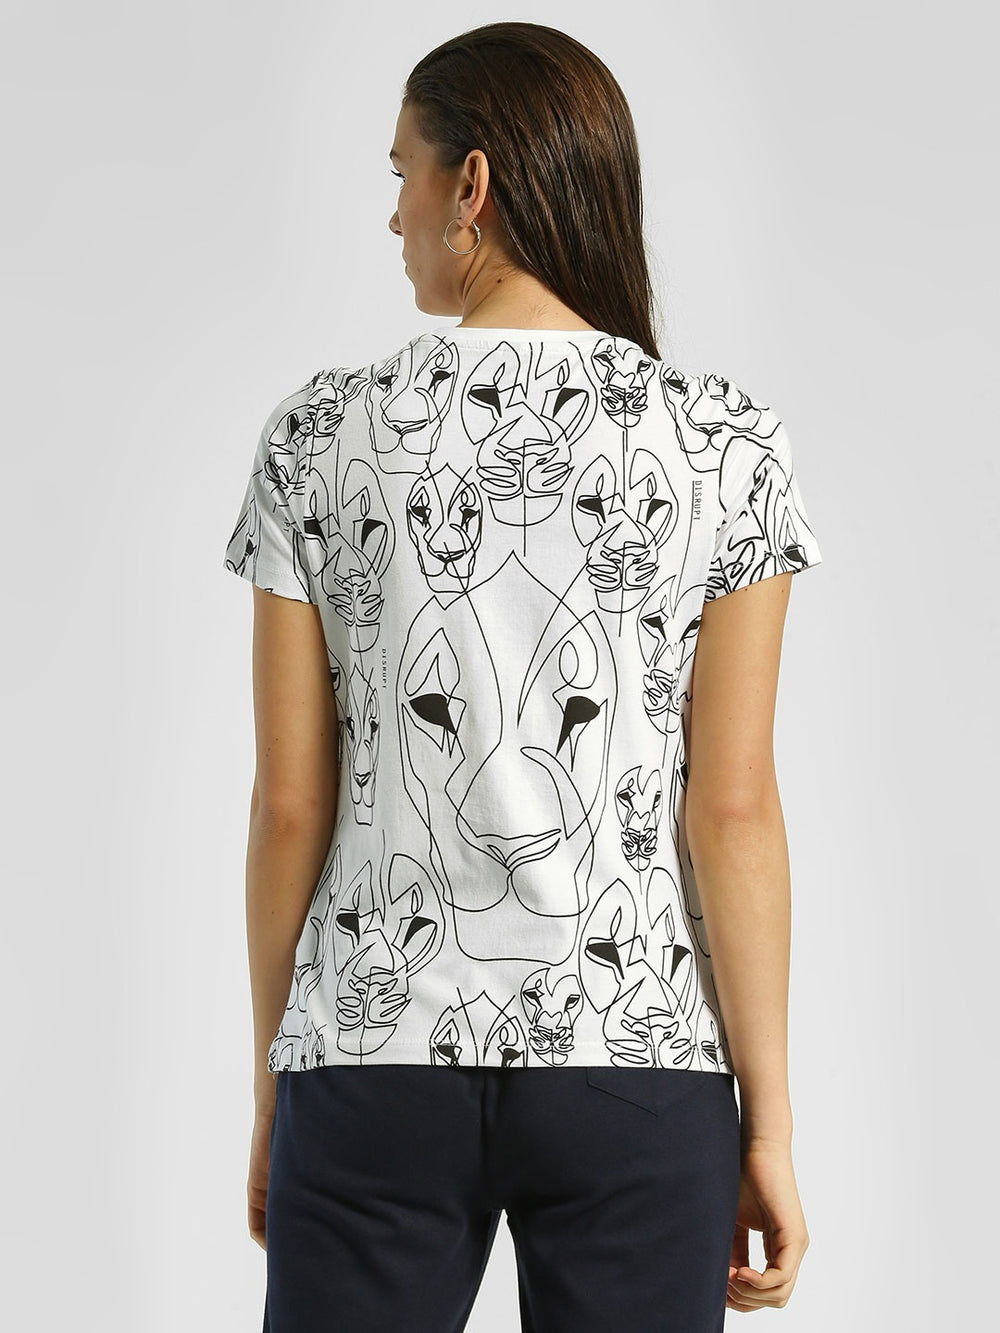 White Roar Graphic Print Cotton T-shirt